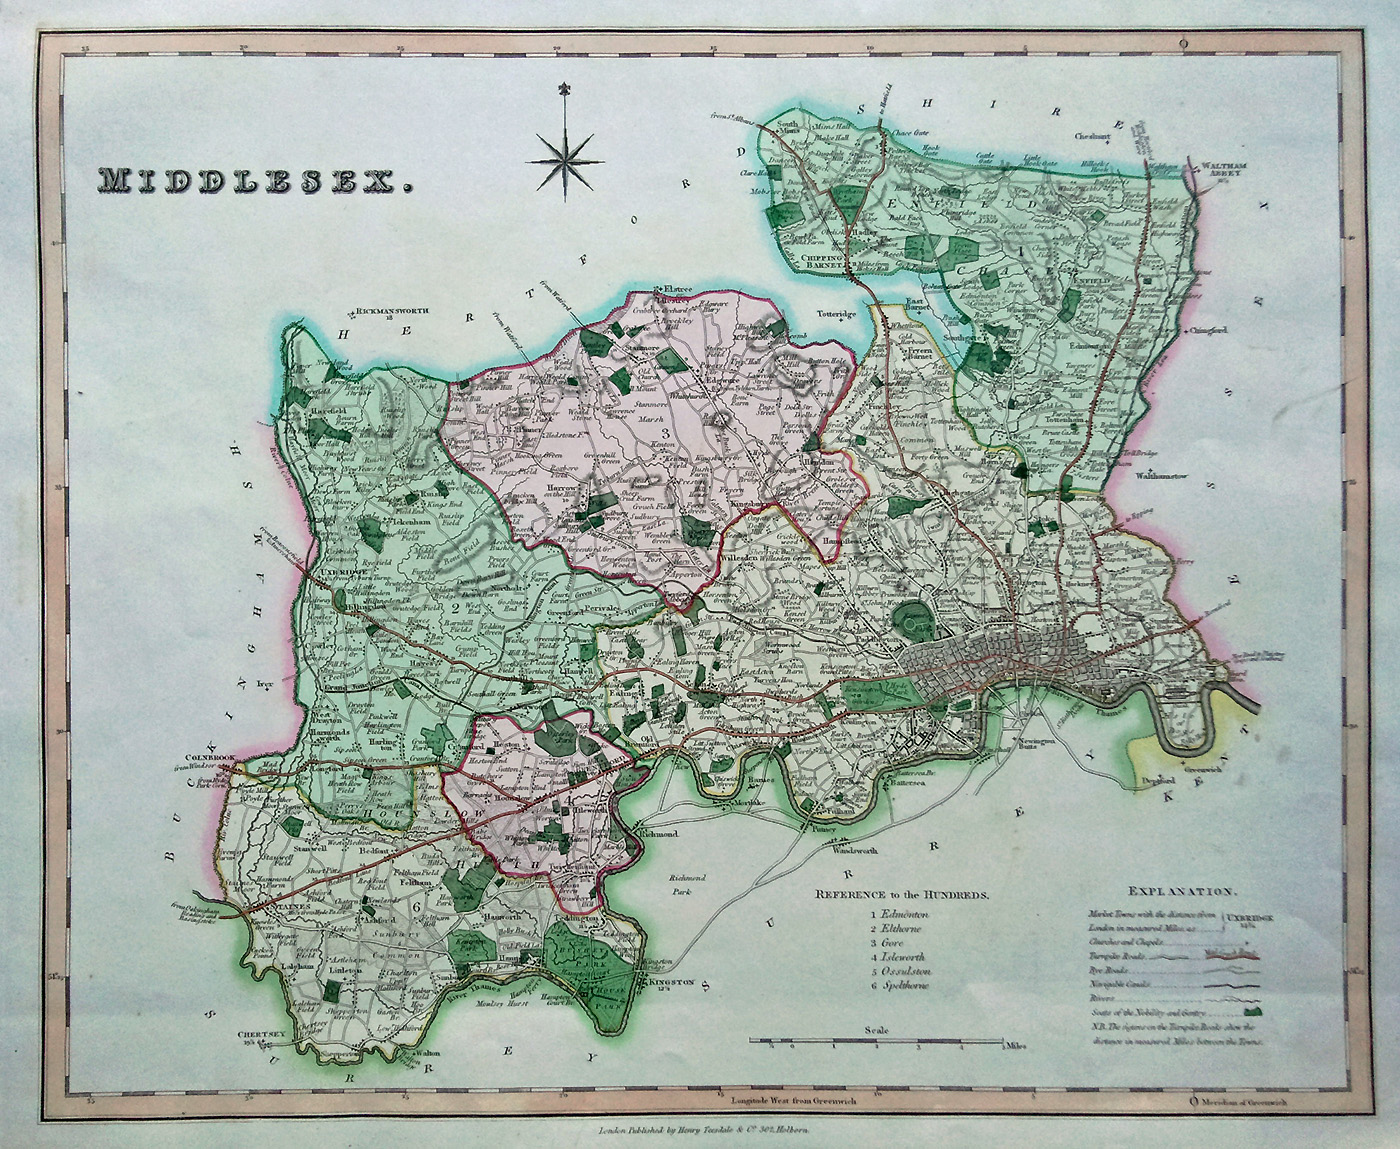 Antique Map Of Middlesex By Rowe And Teesdale